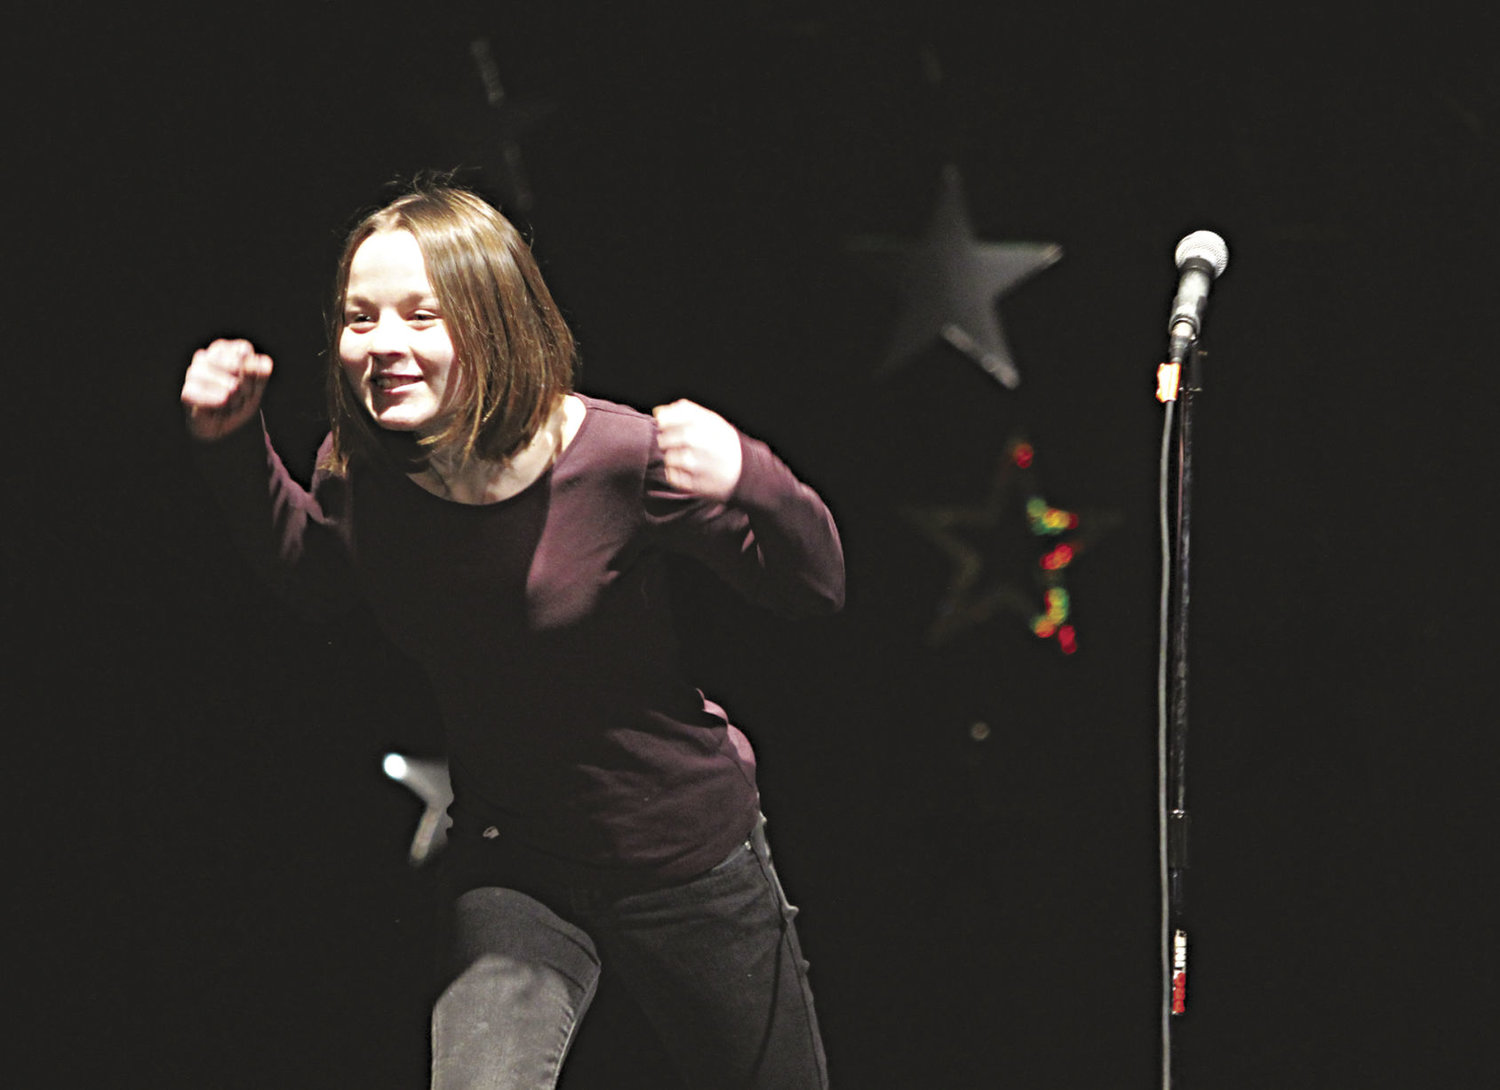 "Eighth-grader Emillia Nunn impressed the Stars of Tomorrow judges with her stand-up comedy routine that poked fun at what it's like to be a teenager in Port Townsend with ""nothing to do."" Nunn took first place at the annual Port Townsend Kiwanis Club talent show Sunday, Feb. 19 at the Port Townsend High School auditorium. She's set to perform at the Uptown Street Fair and the Jefferson County Fair. Read a review of the talent show and see more photos on page B1 as well as on ptleader.com. Photo by Allison Arthur"